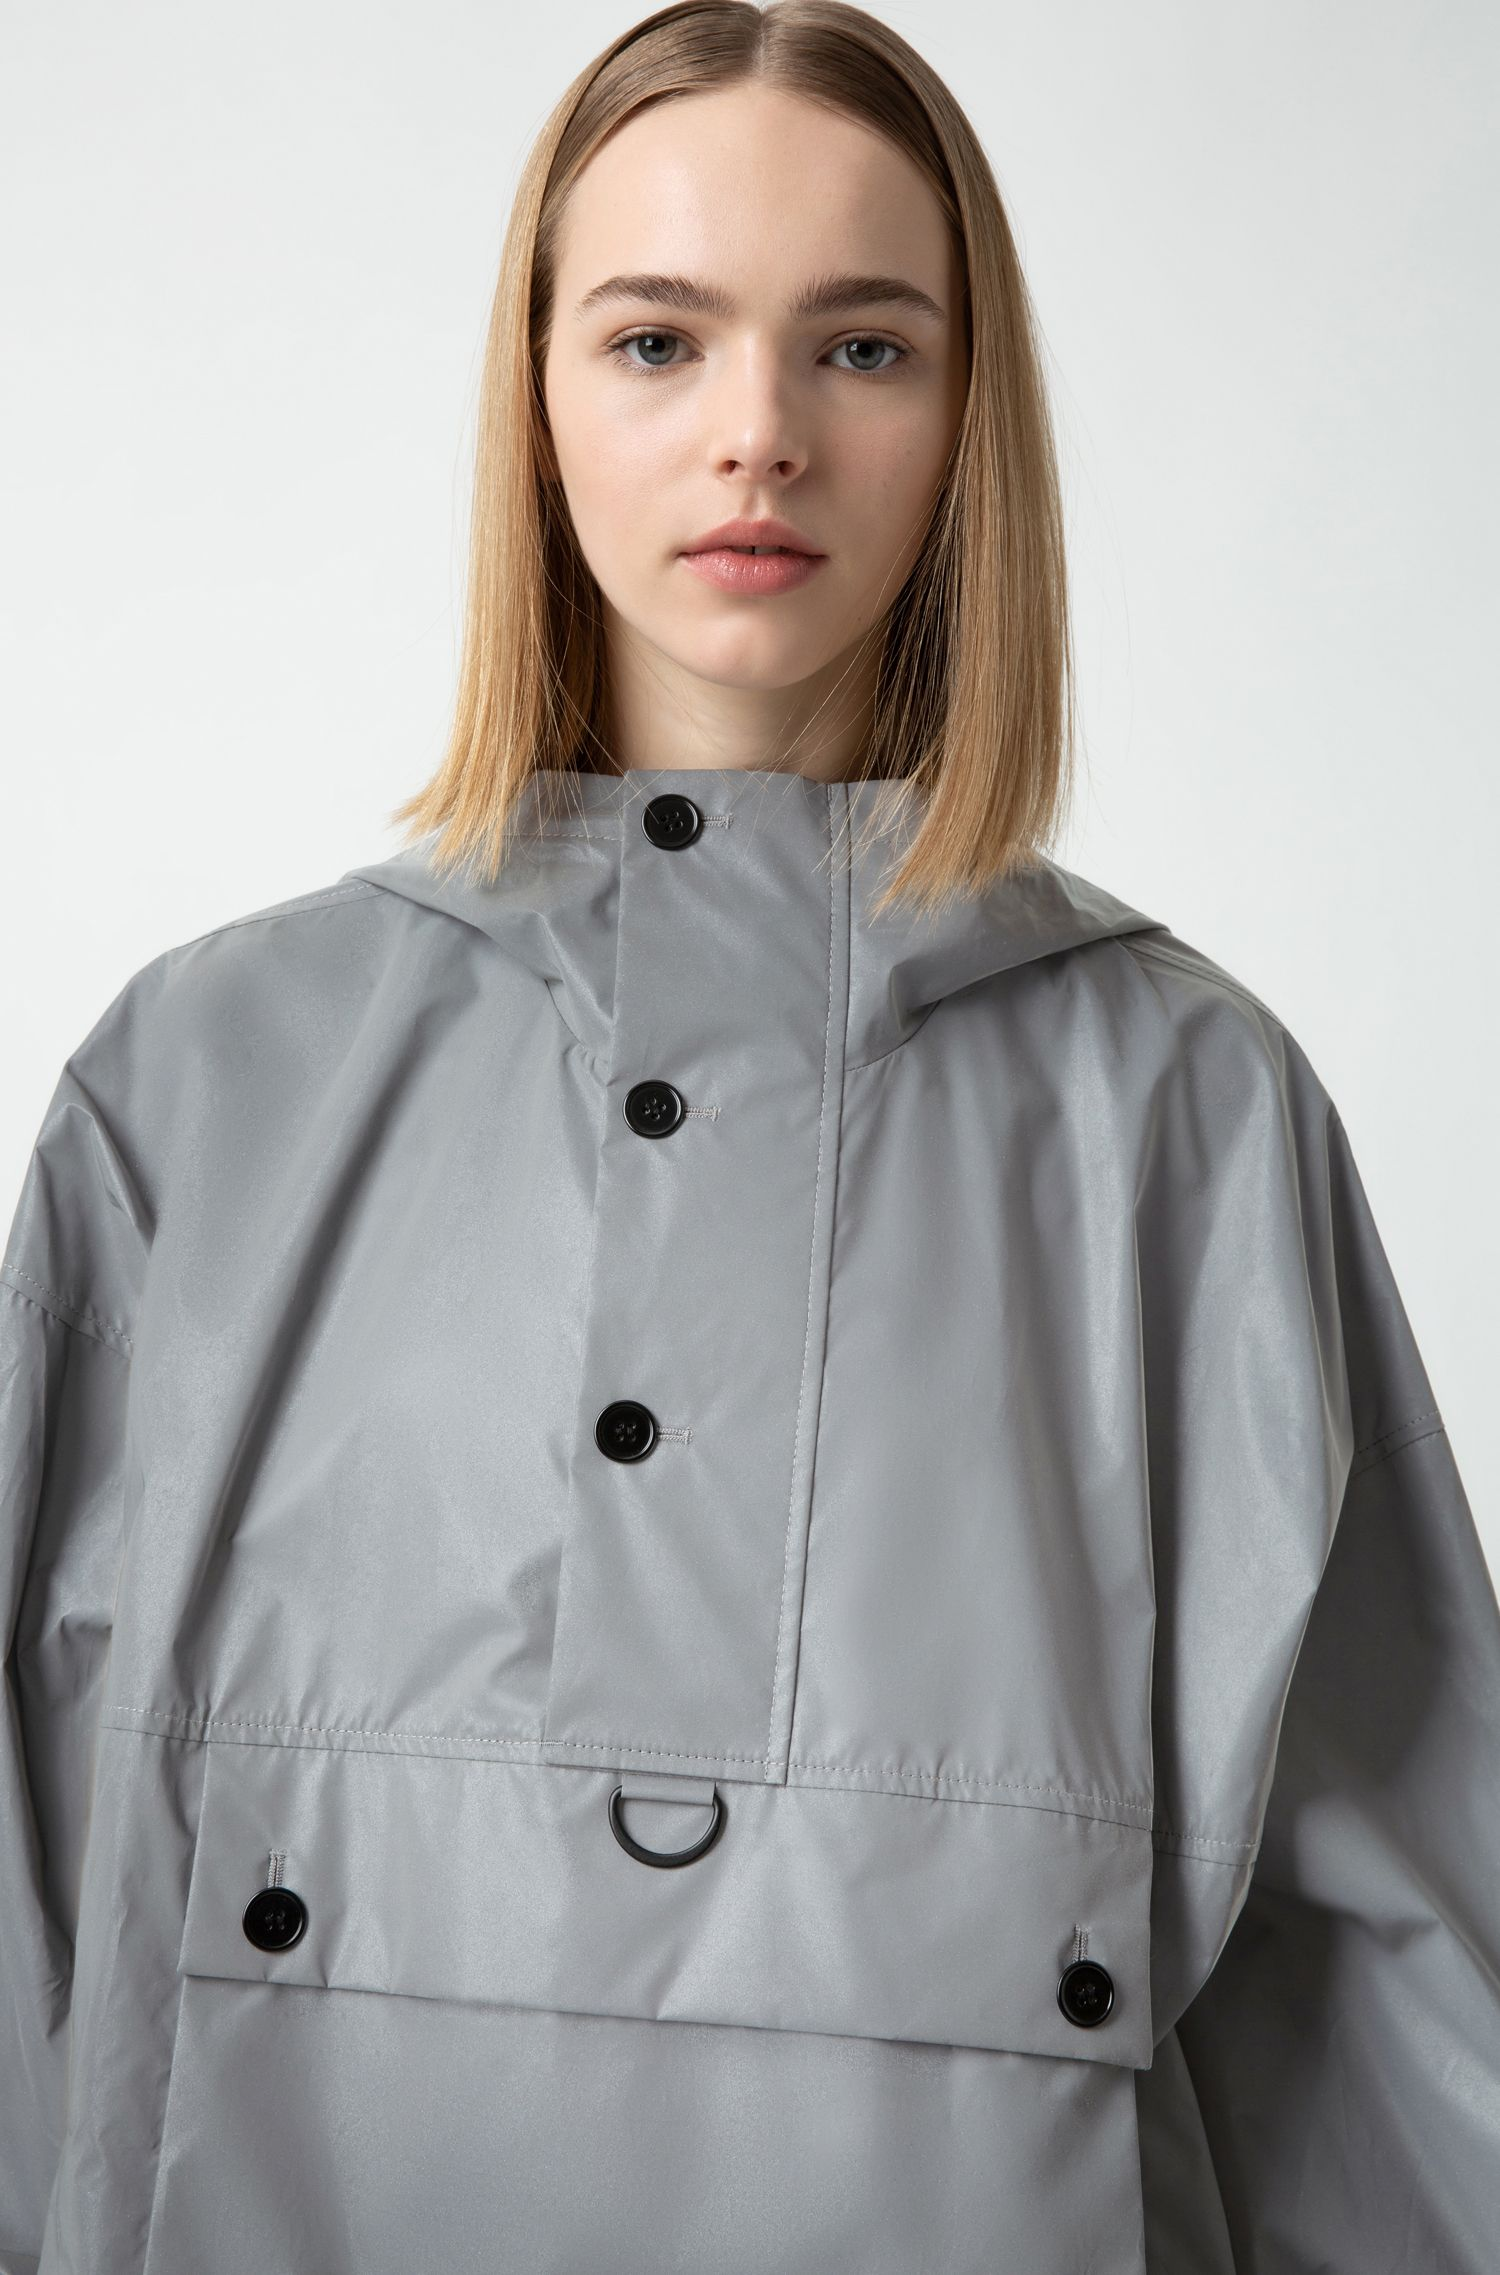 Unisex relaxed-fit windbreaker with reflective finish, Silver